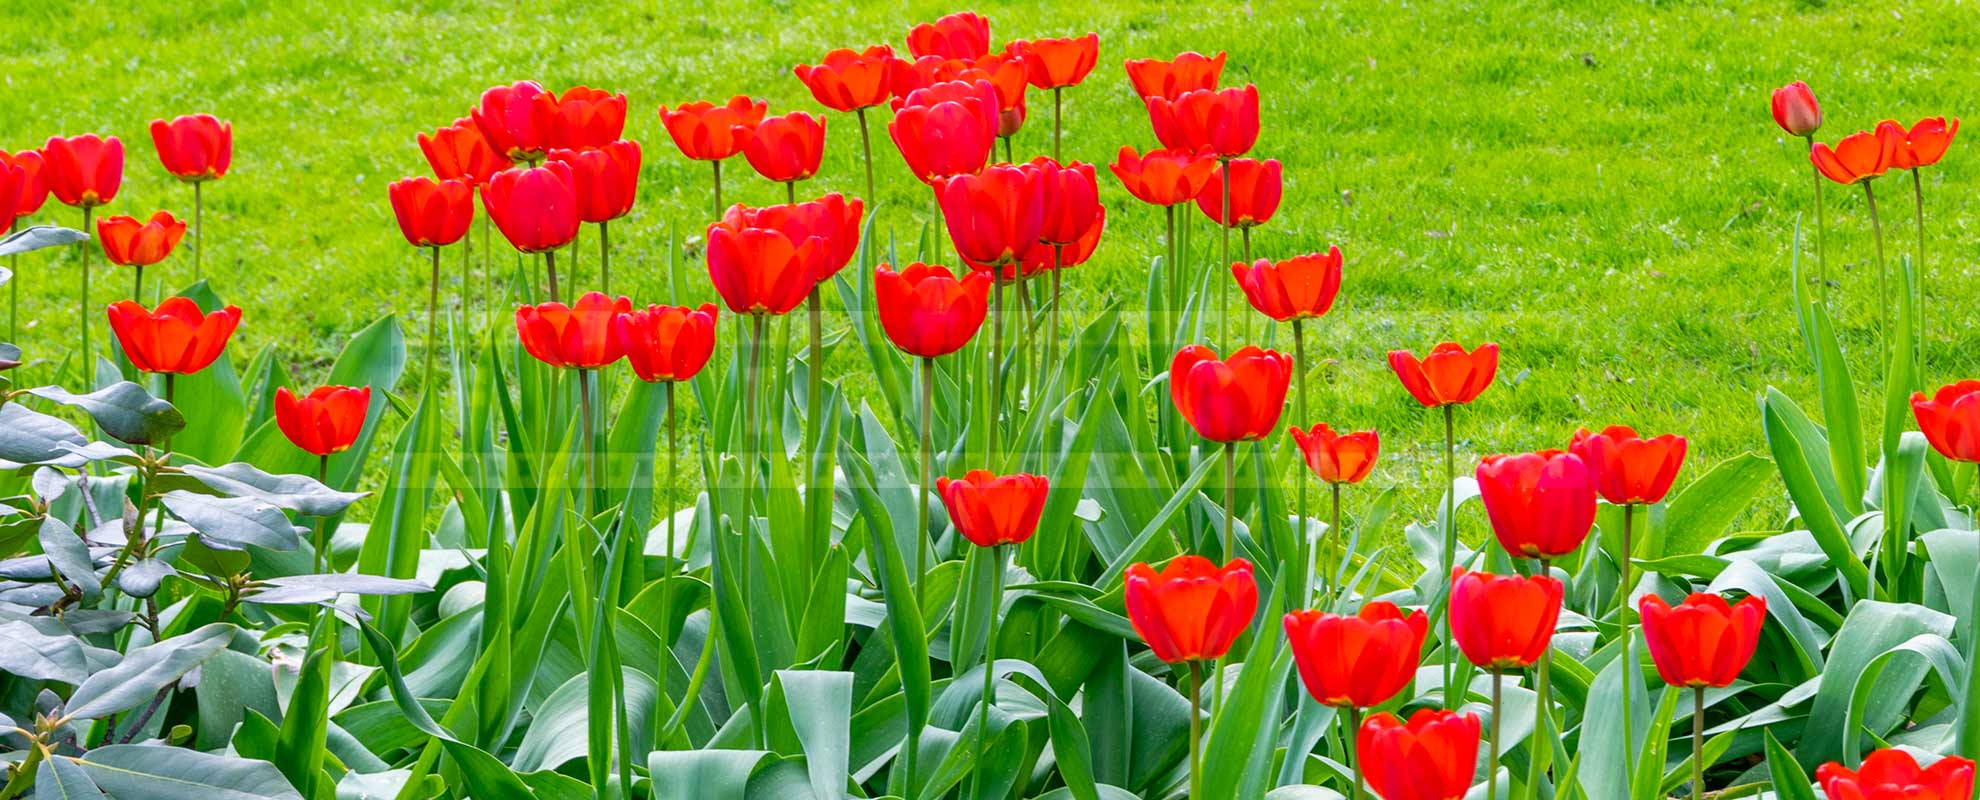 red tulips in full blossom at botanical garden